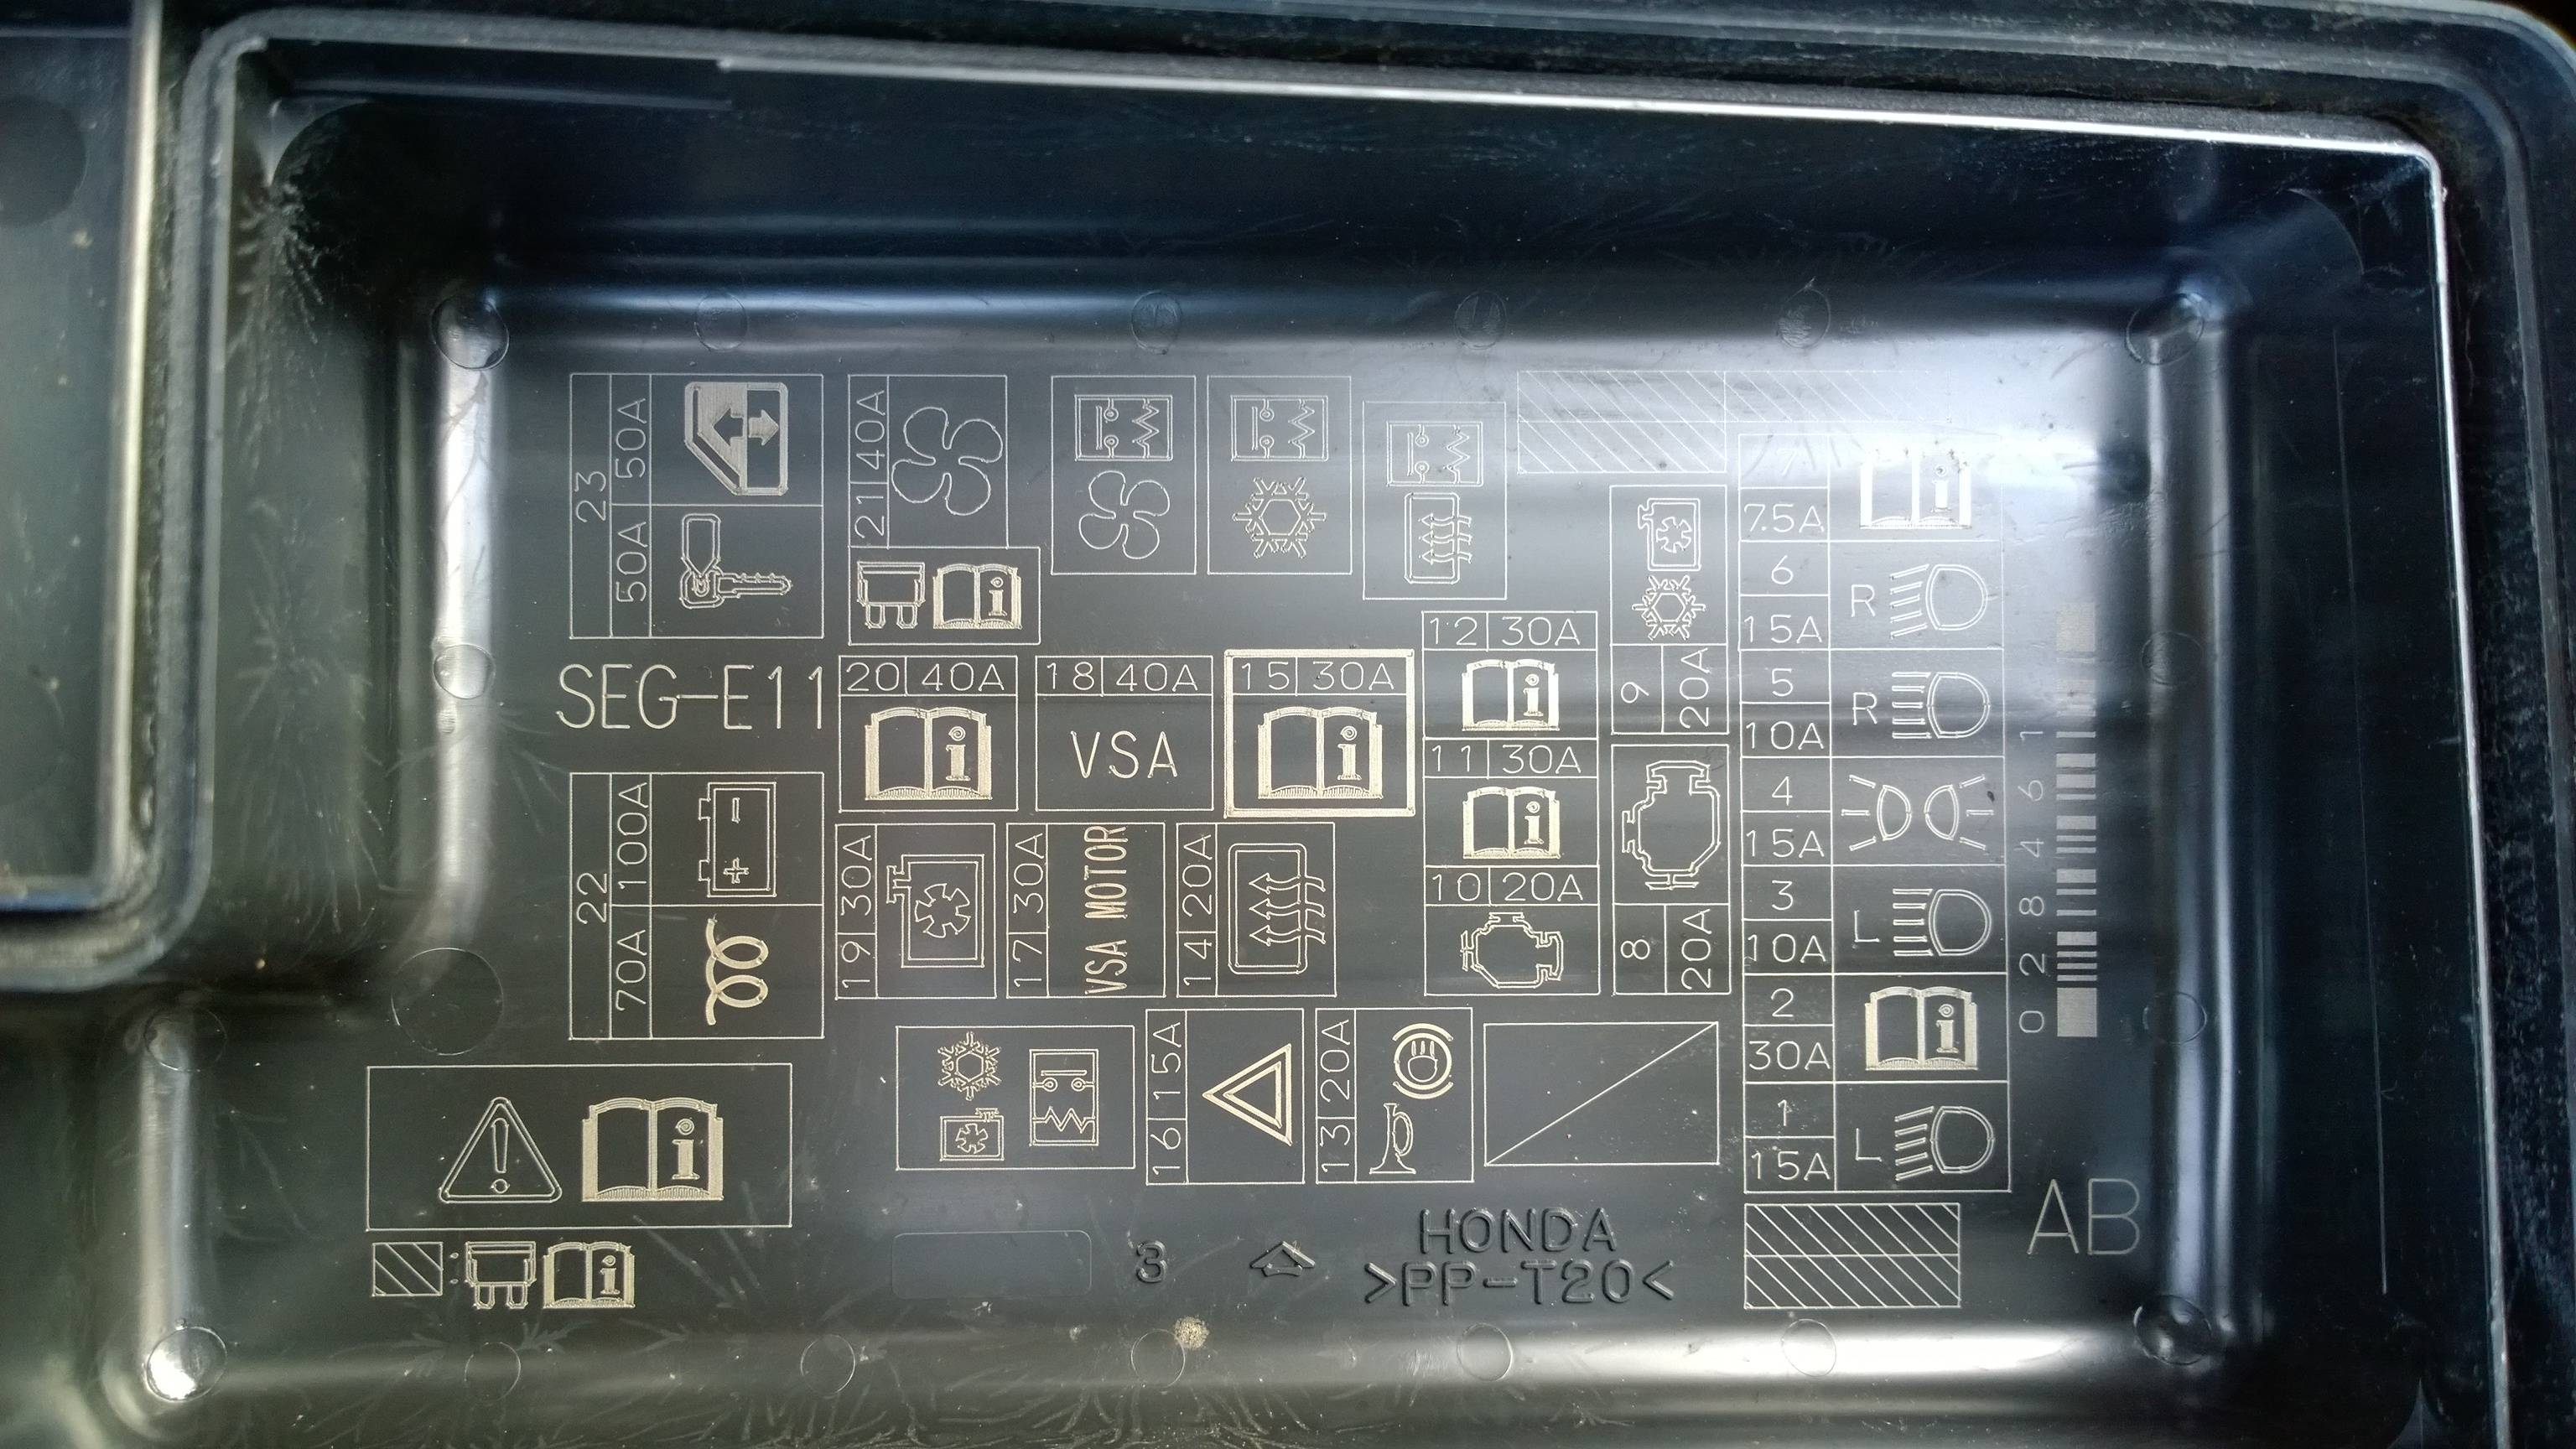 Honda Accord Fuse Box Diagram On 92 Honda Accord Fuse Box Diagram